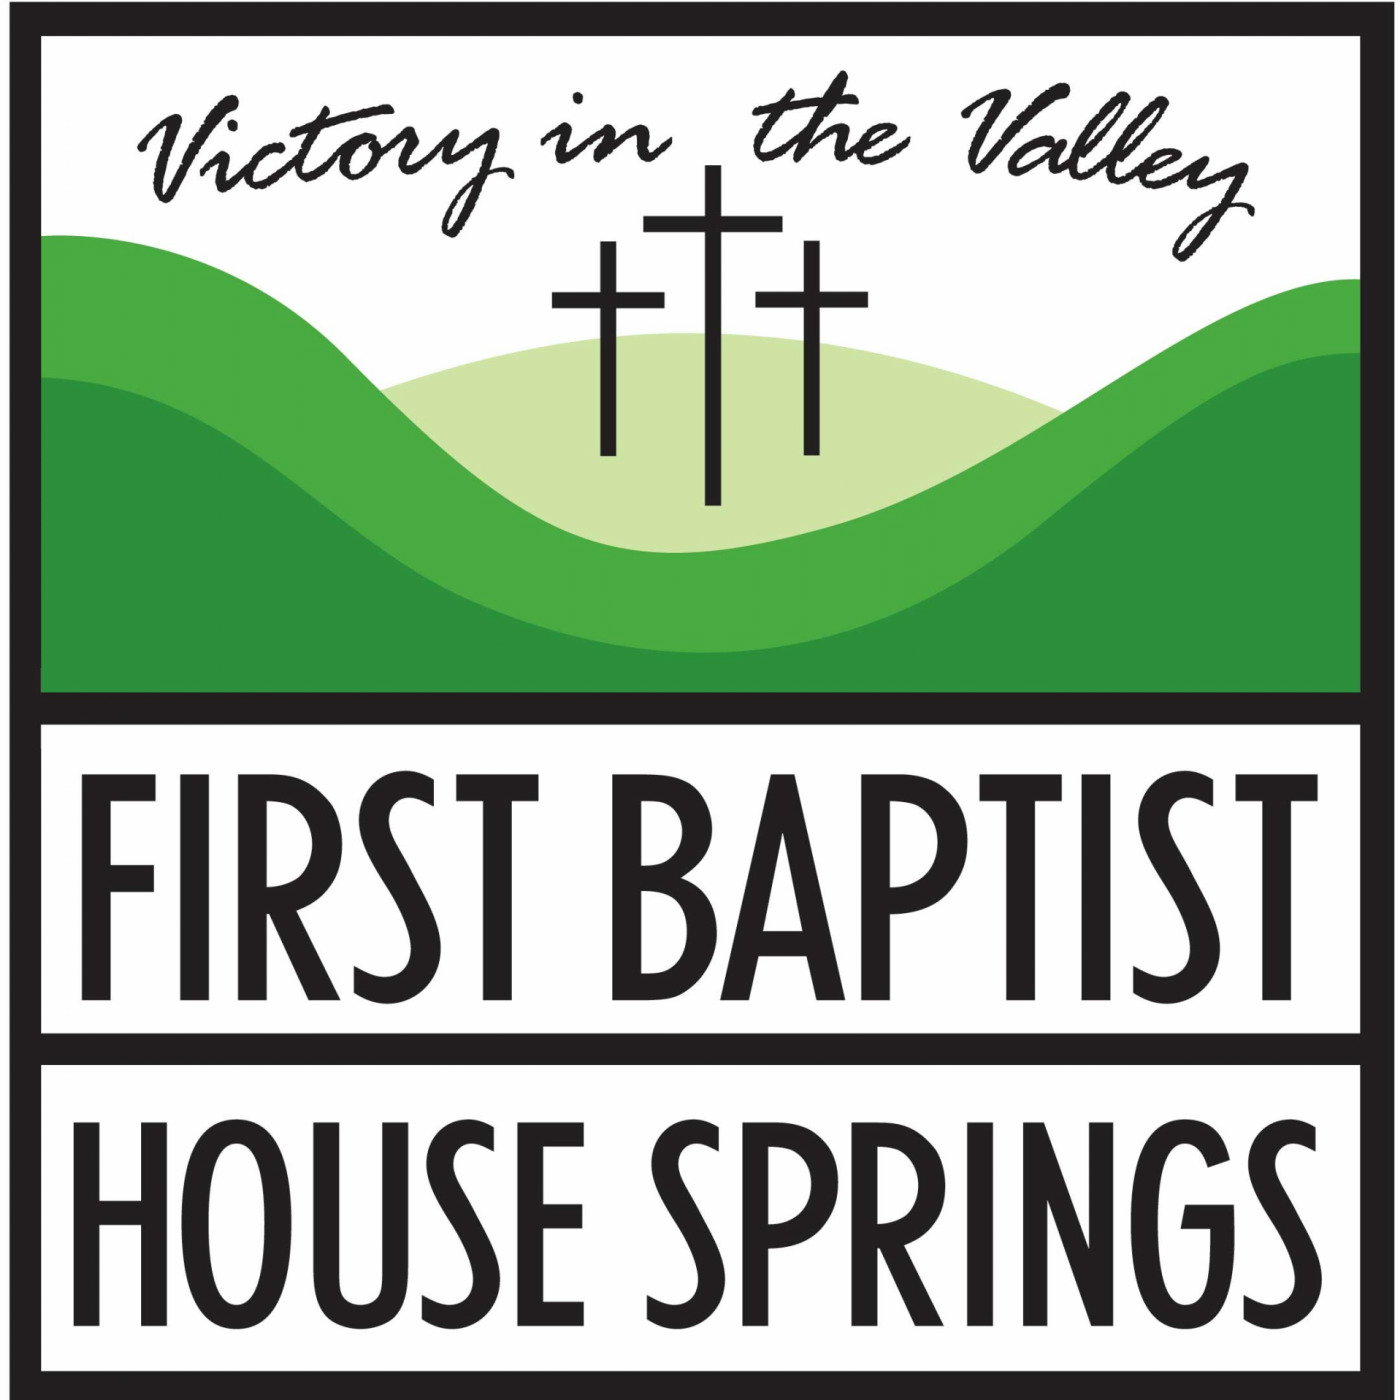 First Baptist House Springs